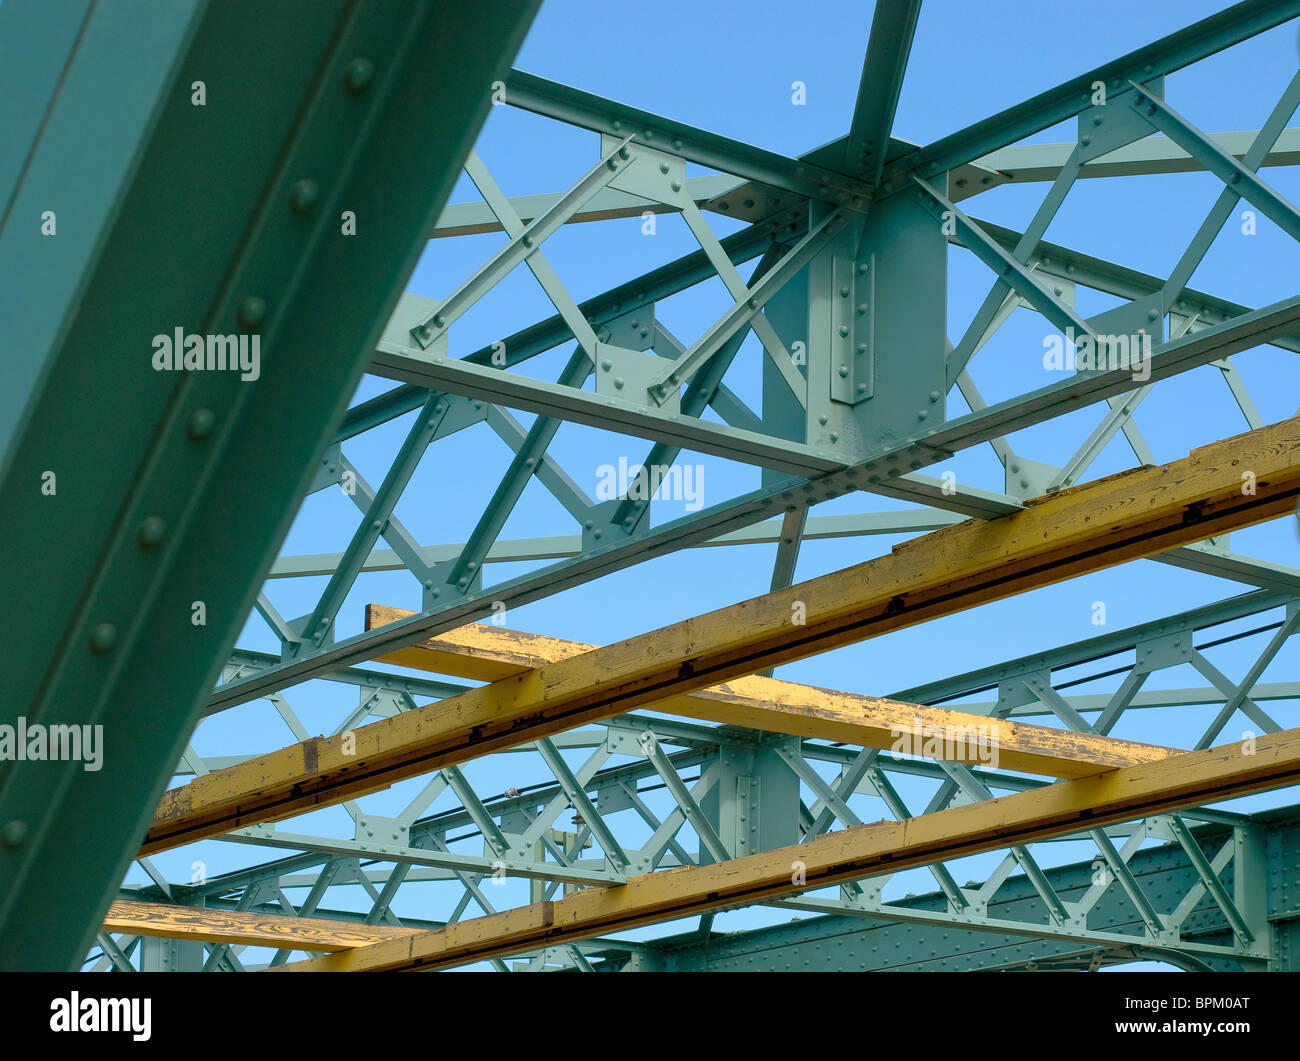 Steel Wires Stock Photos & Steel Wires Stock Images - Alamy